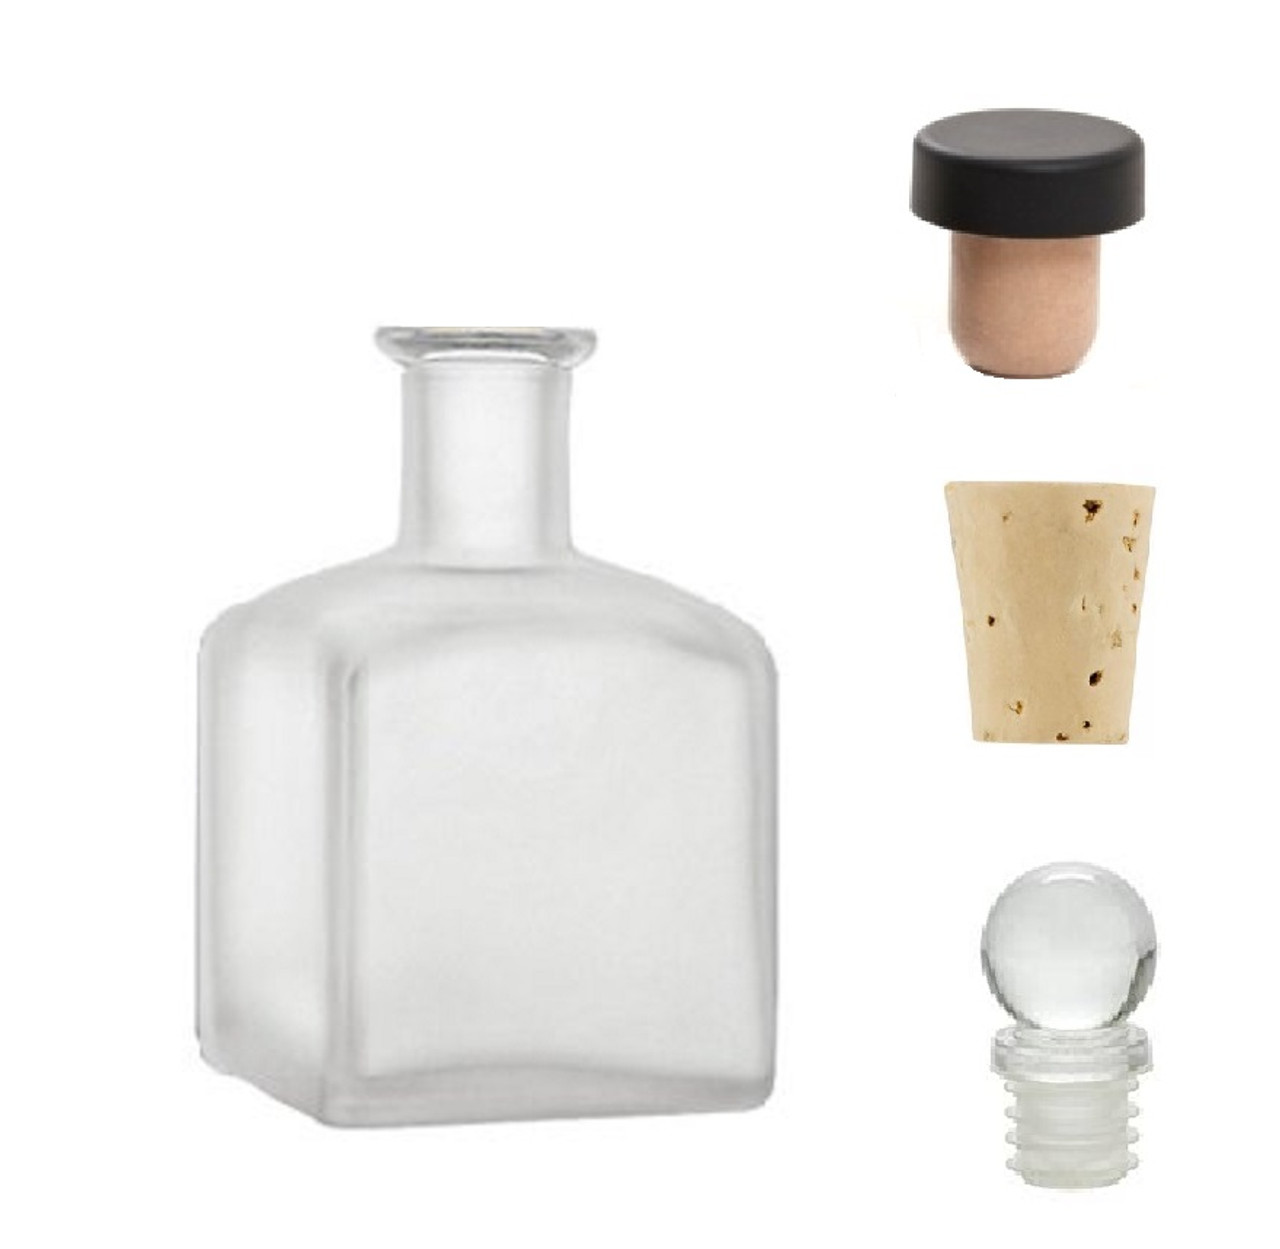 1 pc Clear Square Glass Bottle with Synthetic T-Bar Cork Closure